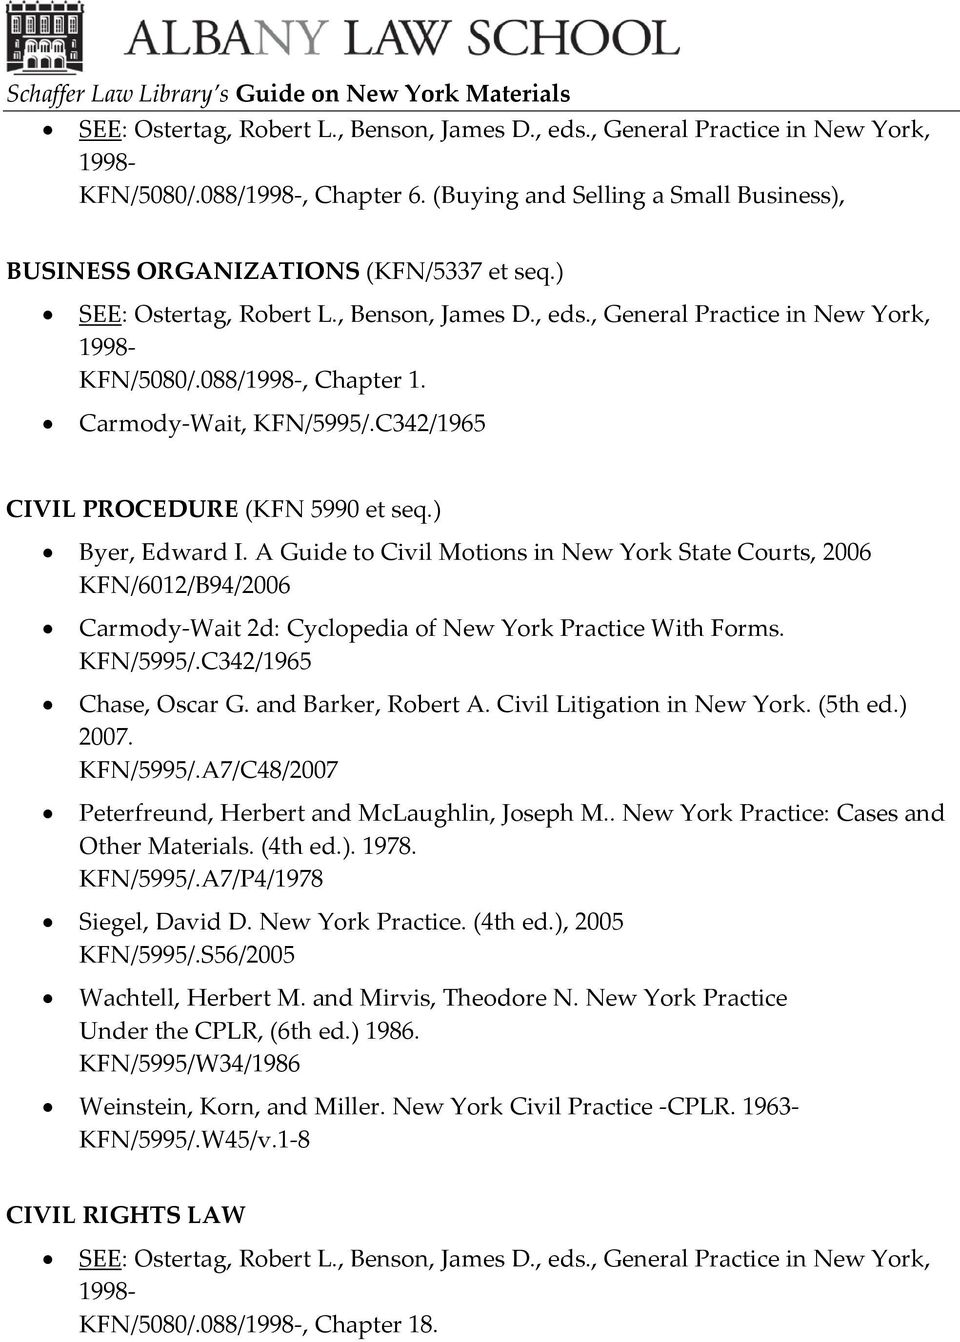 KFN/5995/.C342/1965 Chase, Oscar G. and Barker, Robert A. Civil Litigation in New York. (5th ed.) 2007. KFN/5995/.A7/C48/2007 Peterfreund, Herbert and McLaughlin, Joseph M.